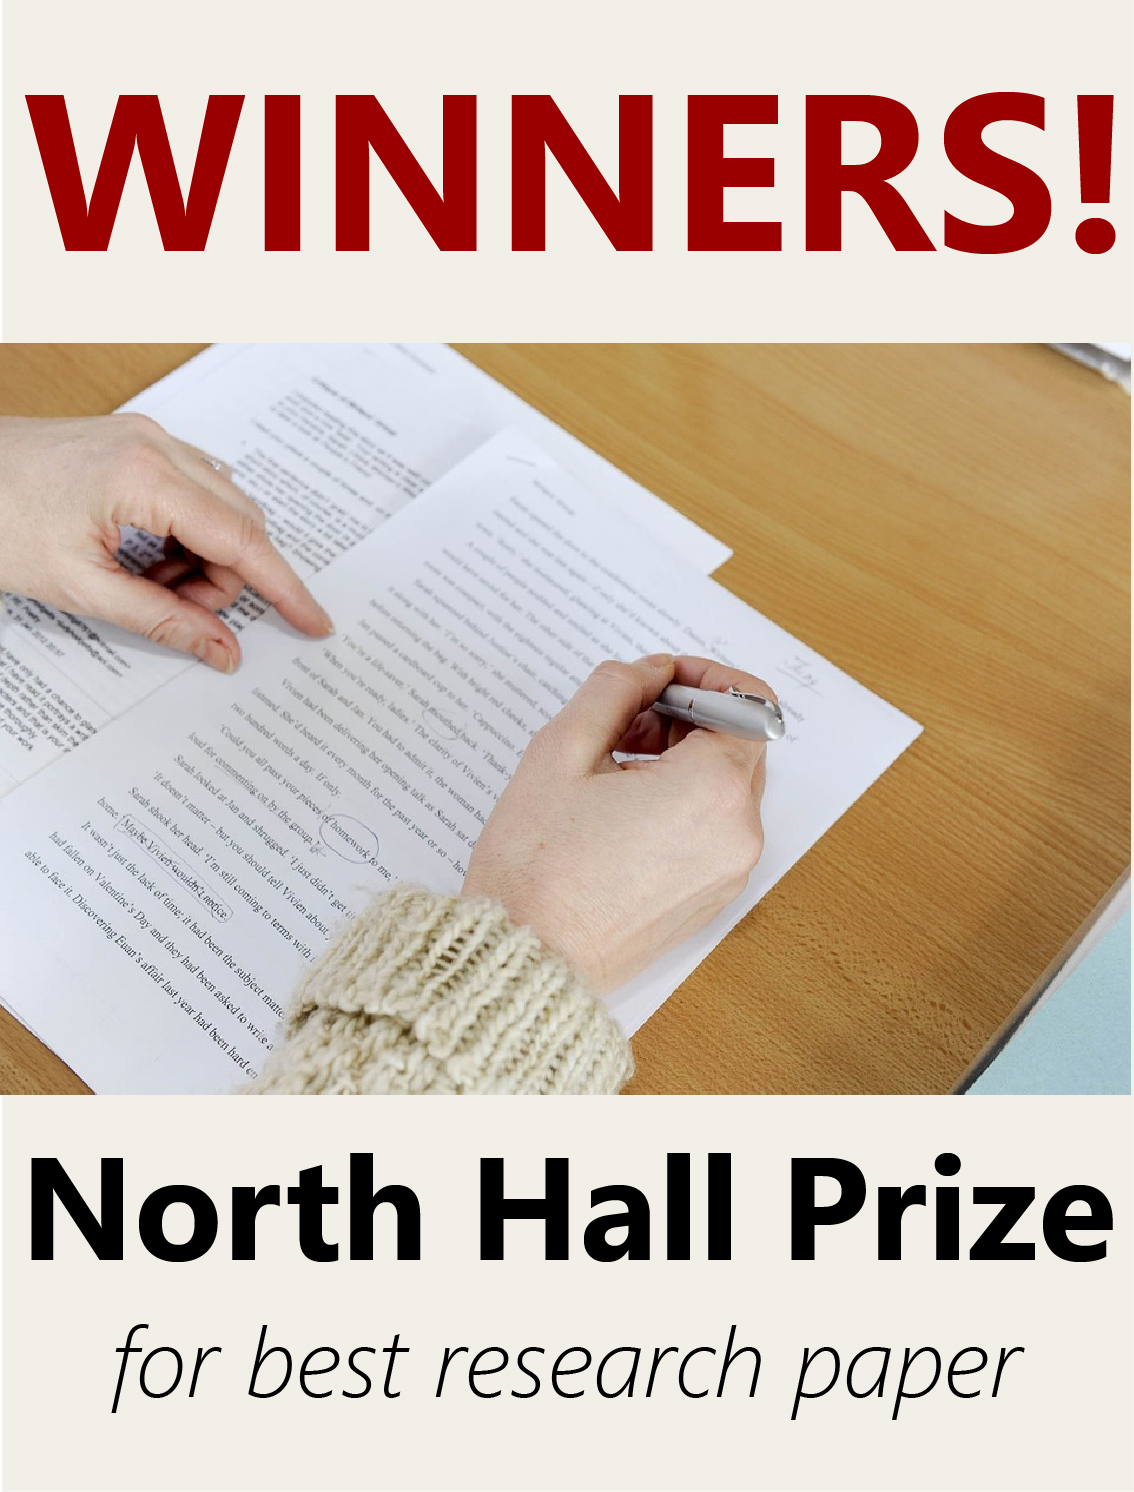 North Hall Prize Winners